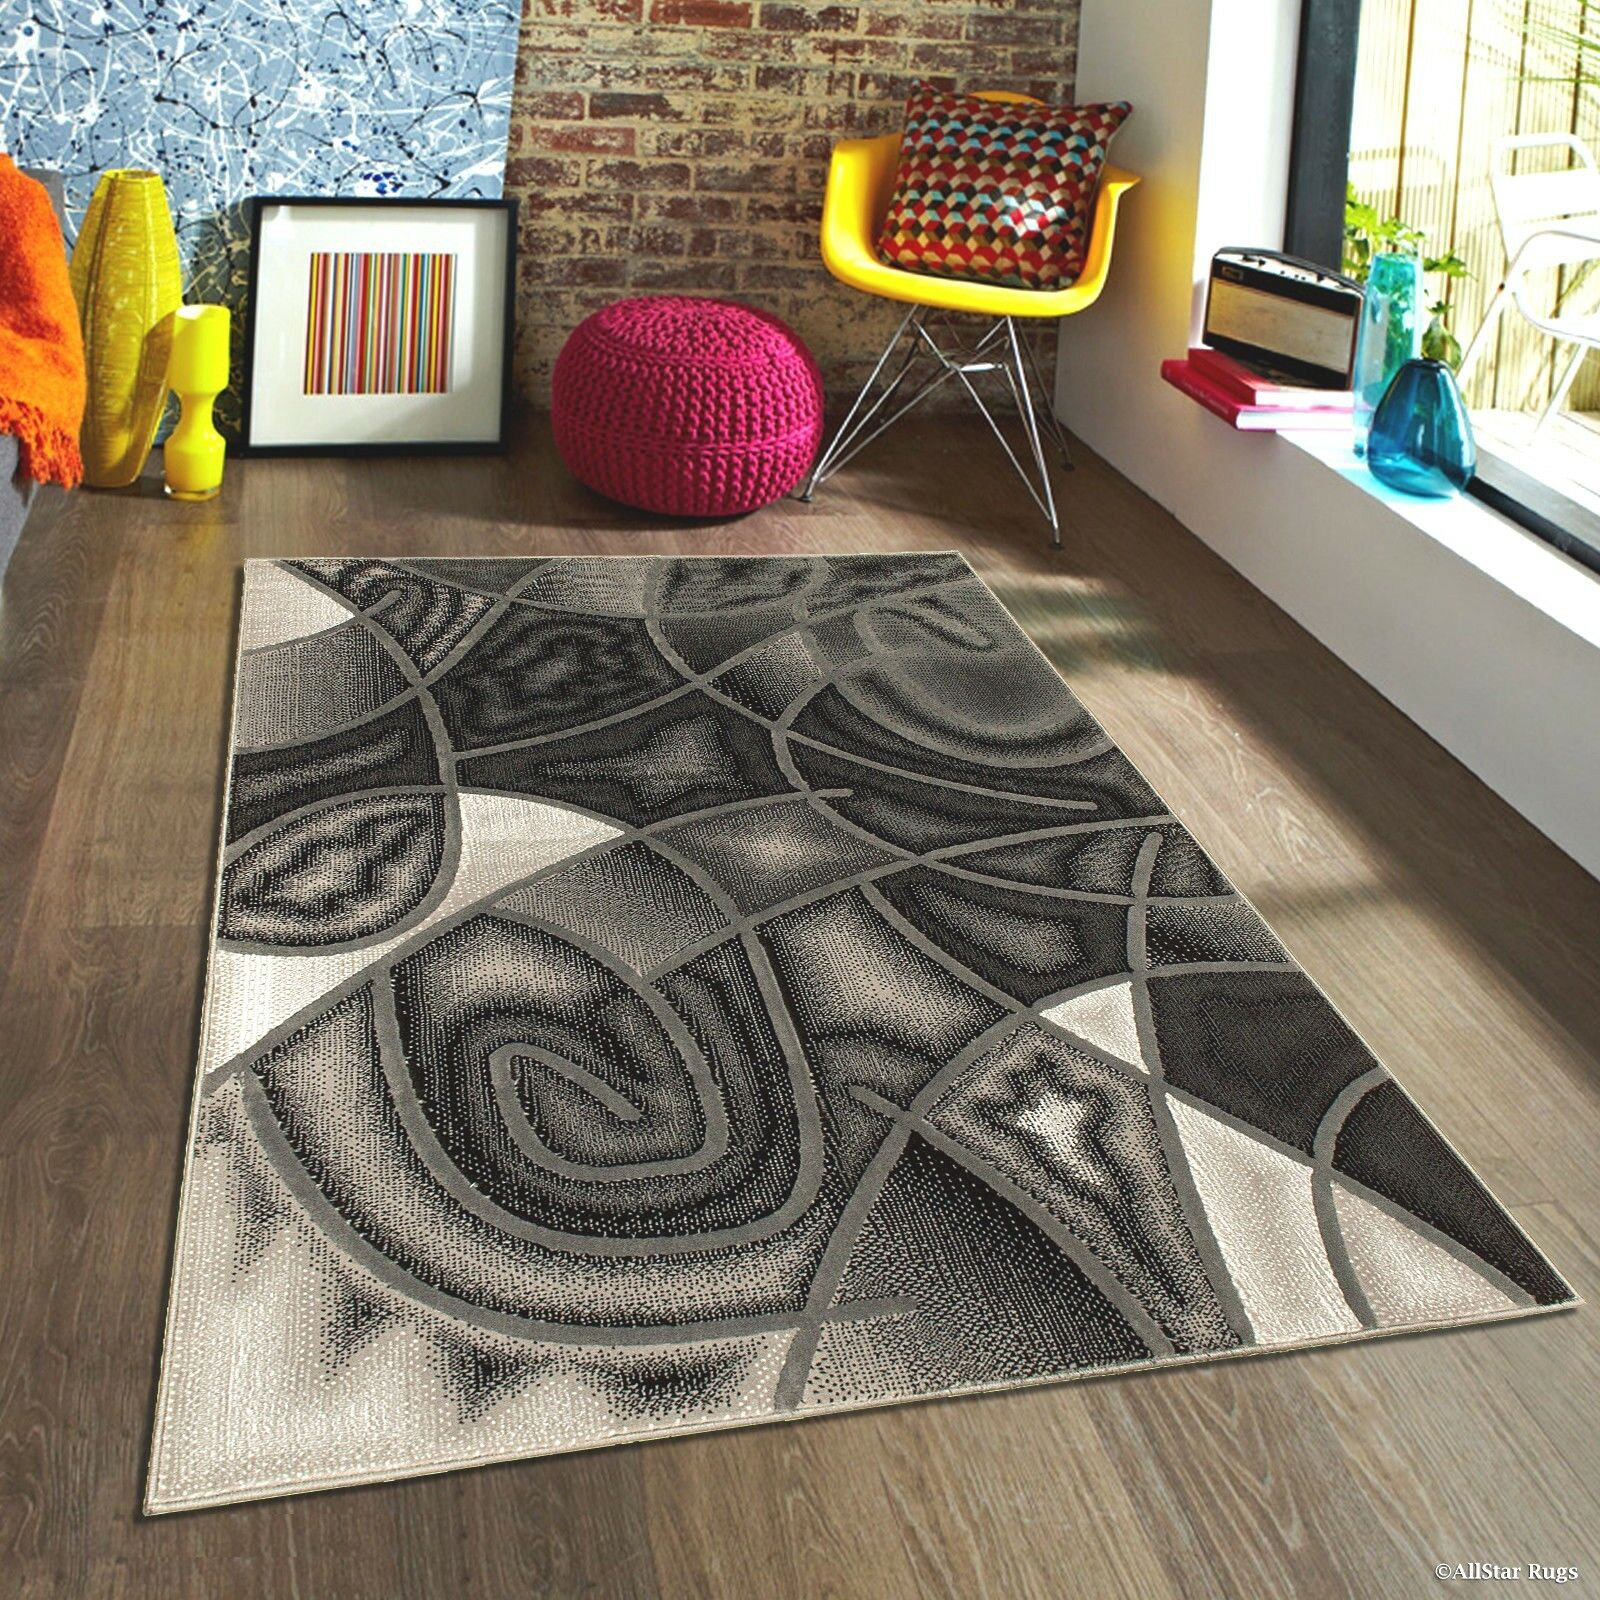 Details About Rugs Area Rugs Carpets 8x10 Rug Modern Large Floor Room Grey Big Gray Cool Rugs